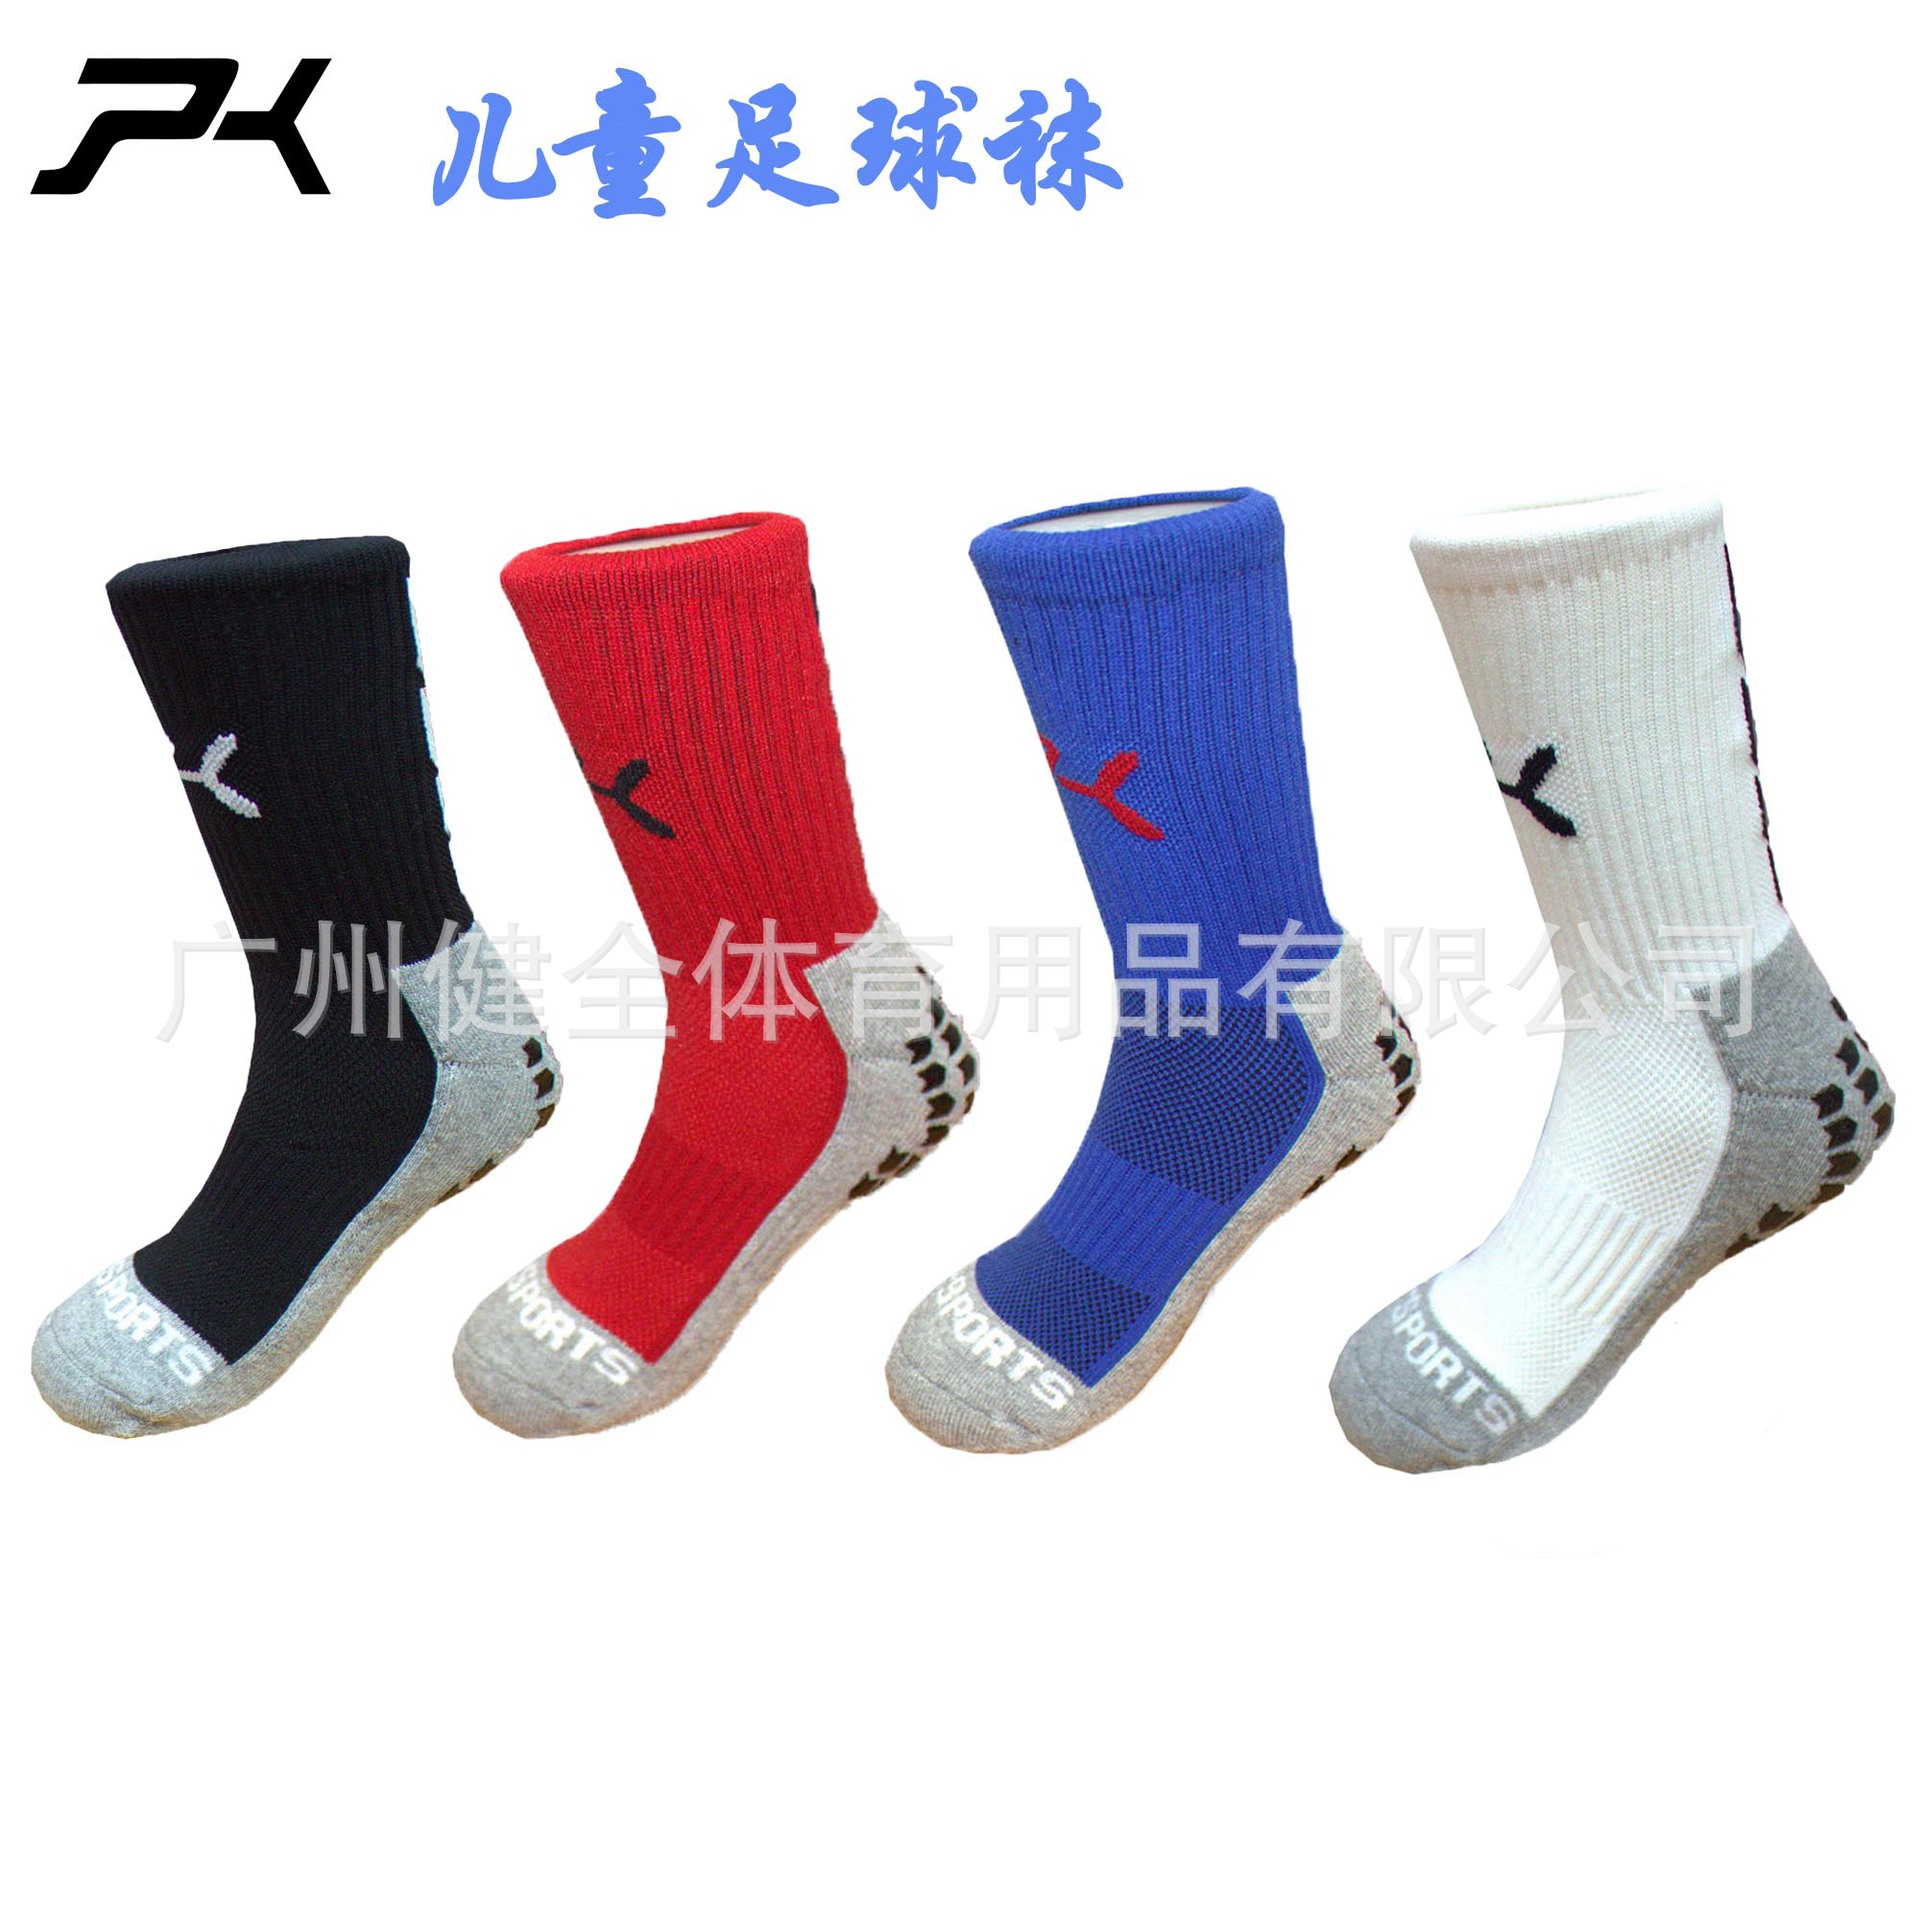 Unisex Kids Nylon Material Arrows Pattern Anti Slip Football Socks Professional Children's Ice Skates Socks Soccer Socks